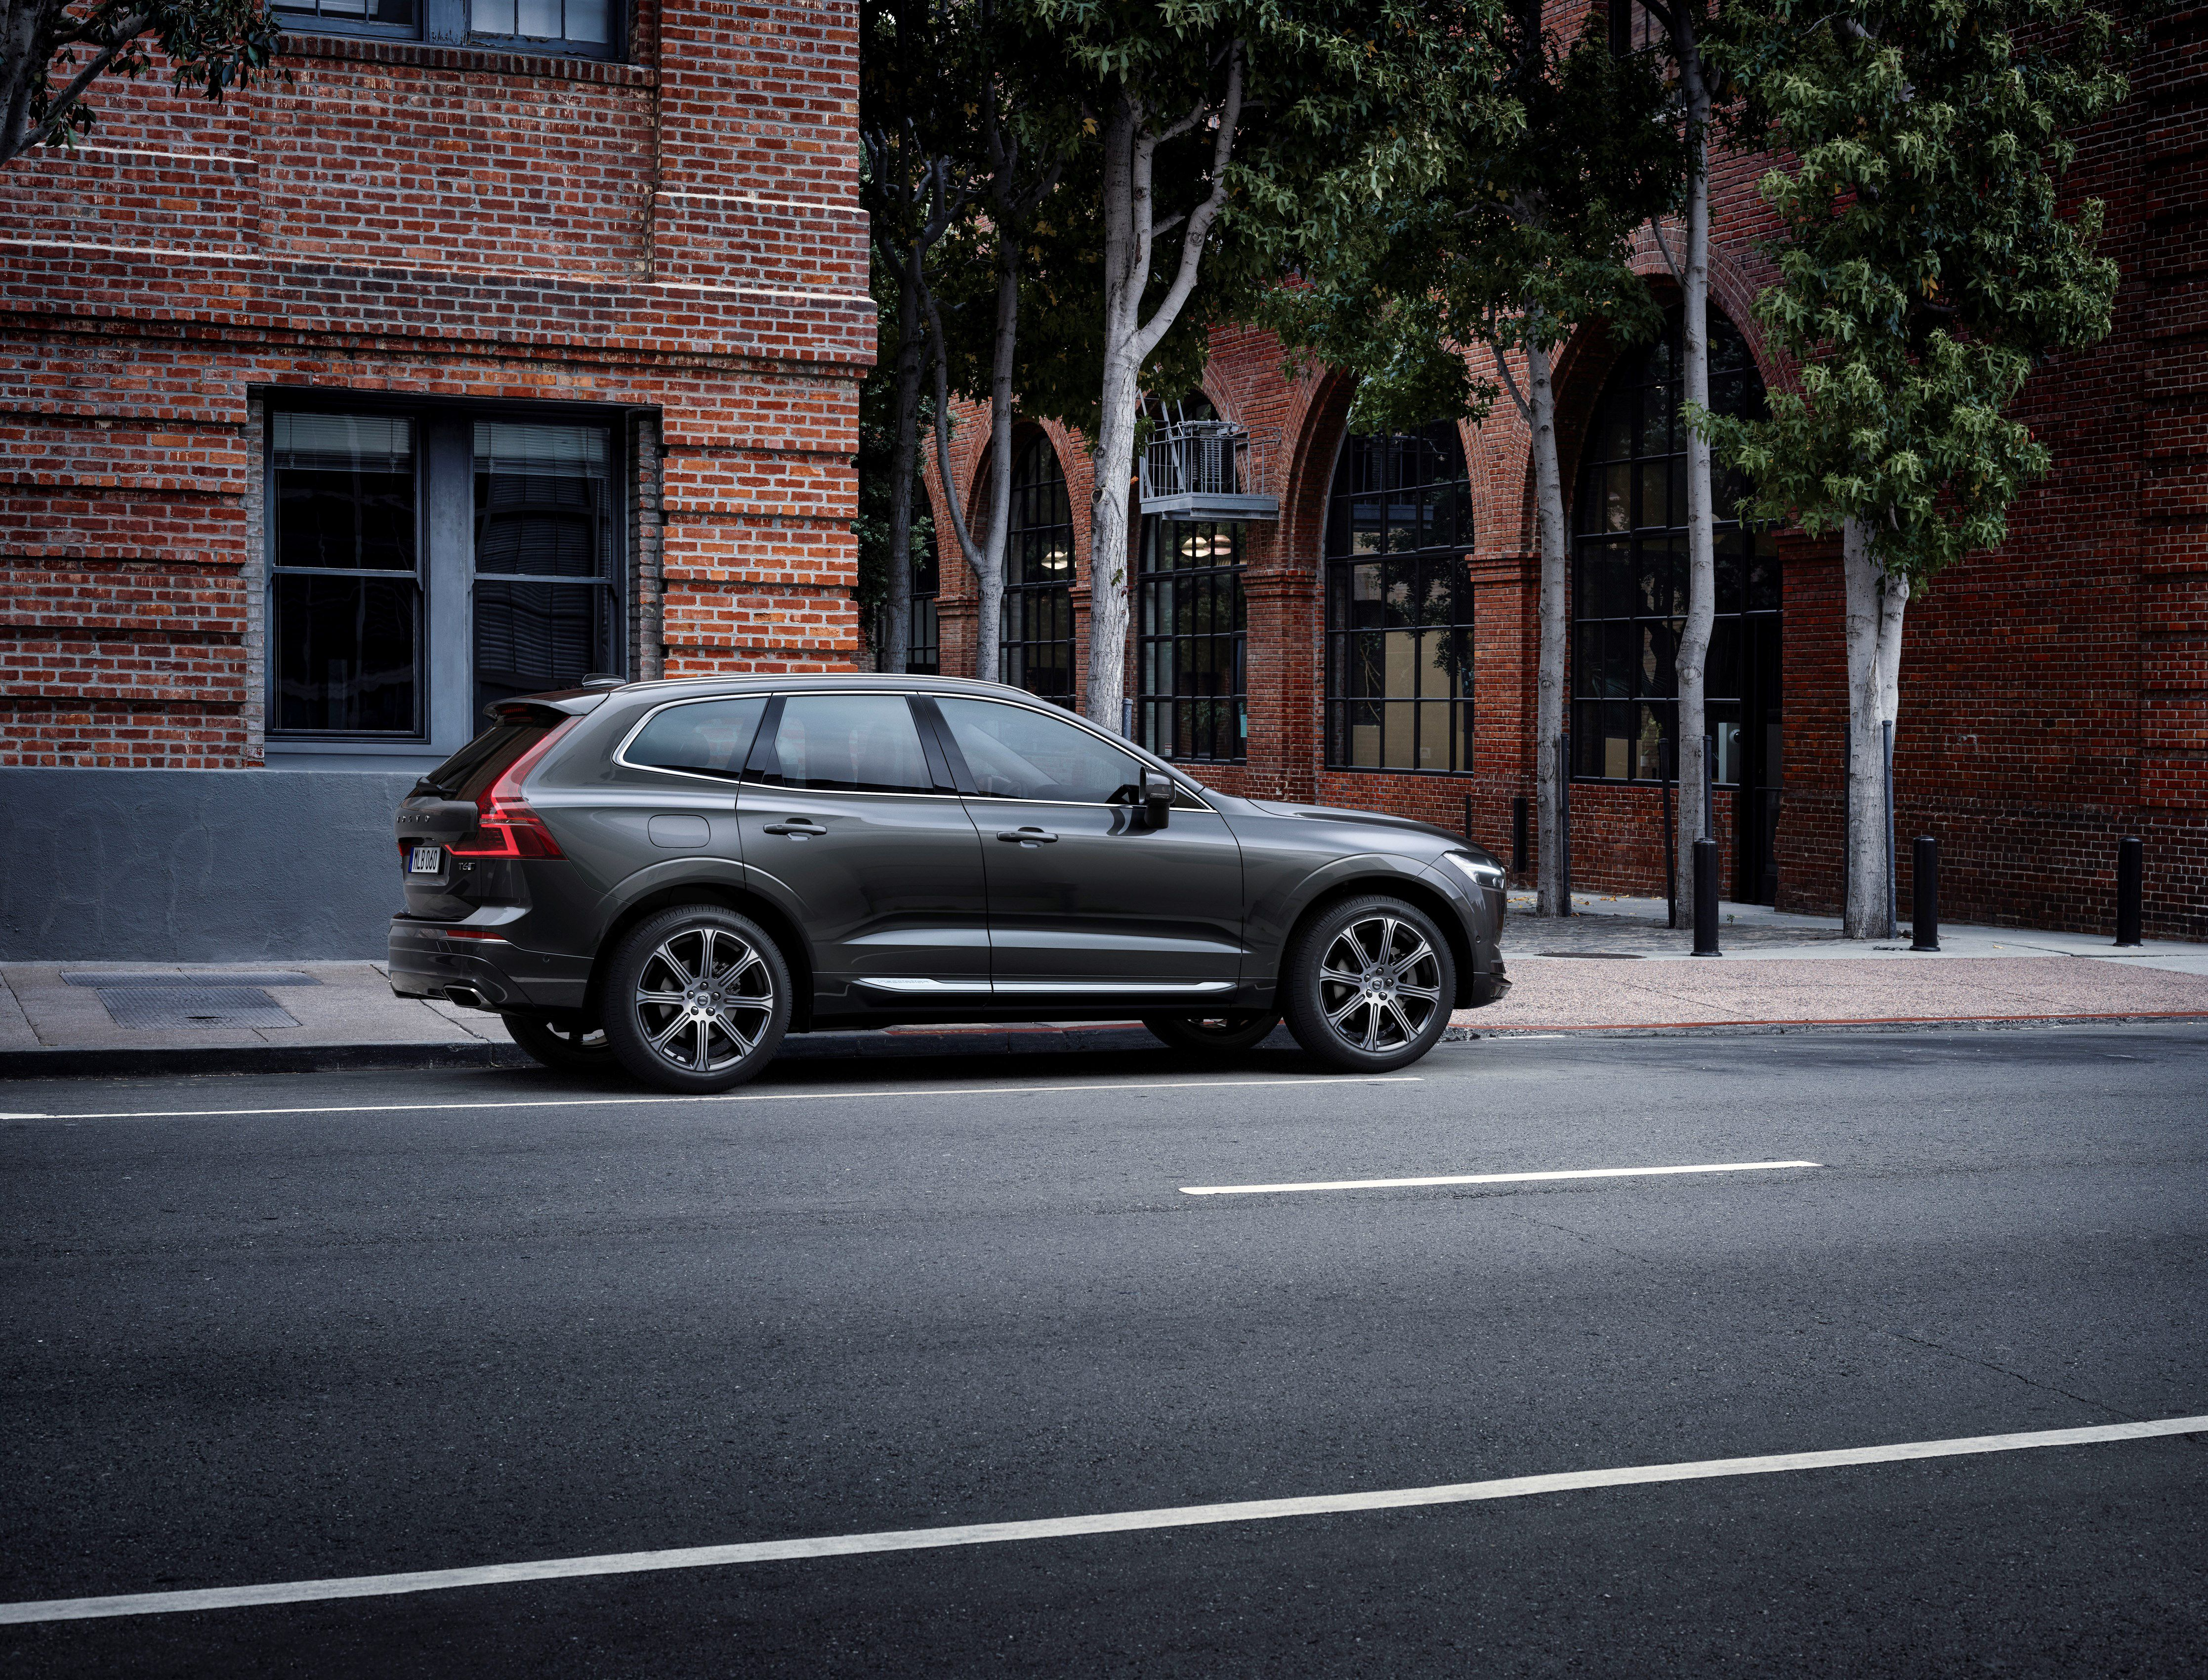 Volvo XC60 The new Volvo XC60, one of the safest cars